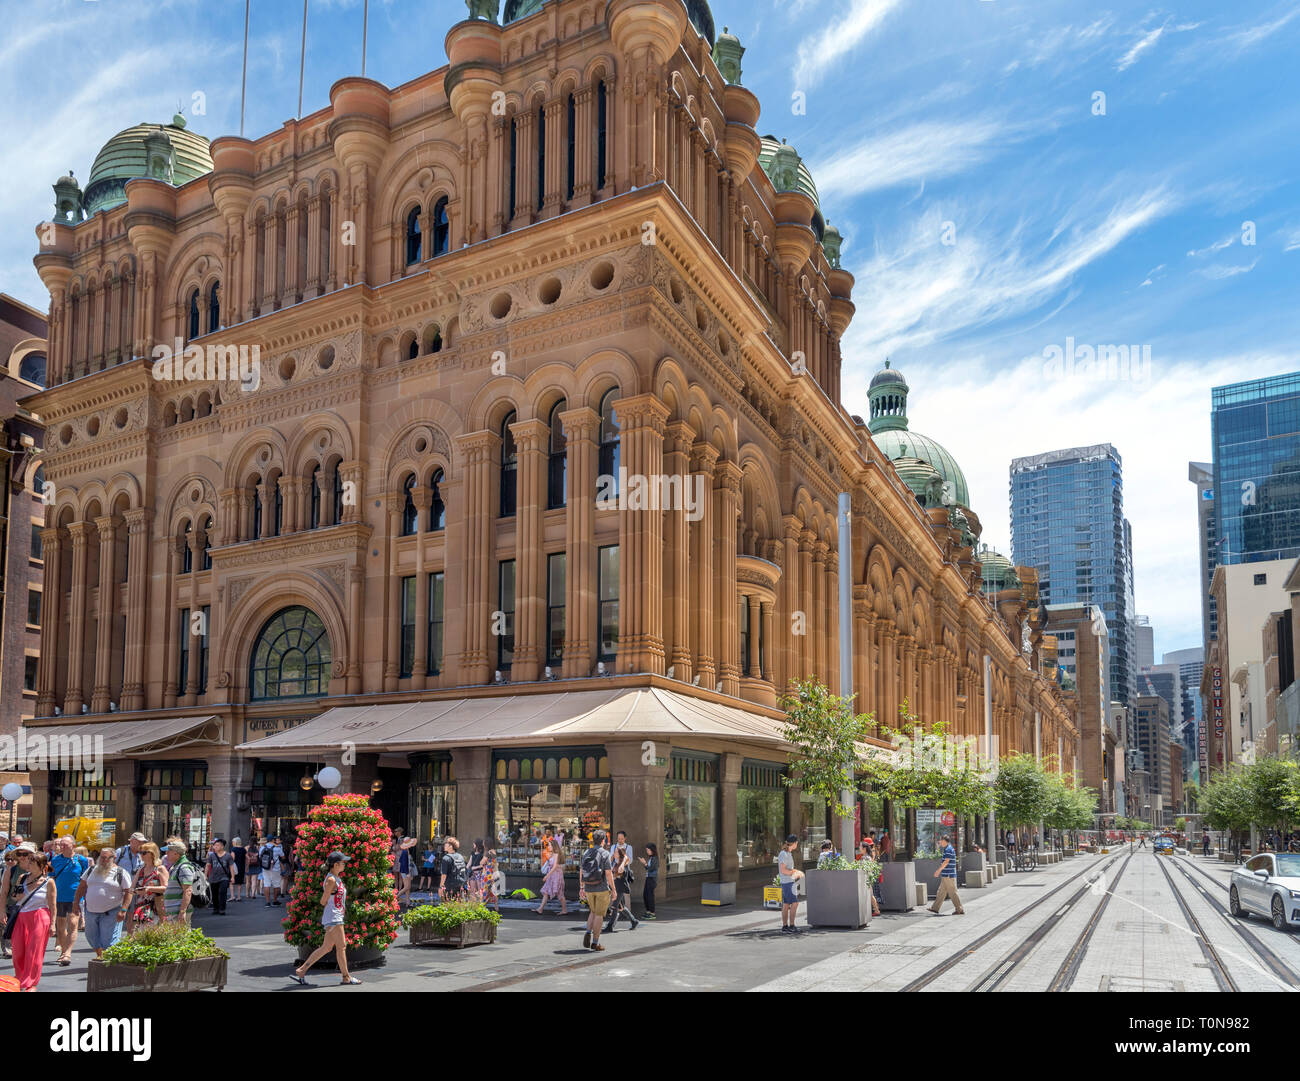 The Queen Victoria Building (QVB) shopping arcade, Central Business District, Sydney, Australia - Stock Image